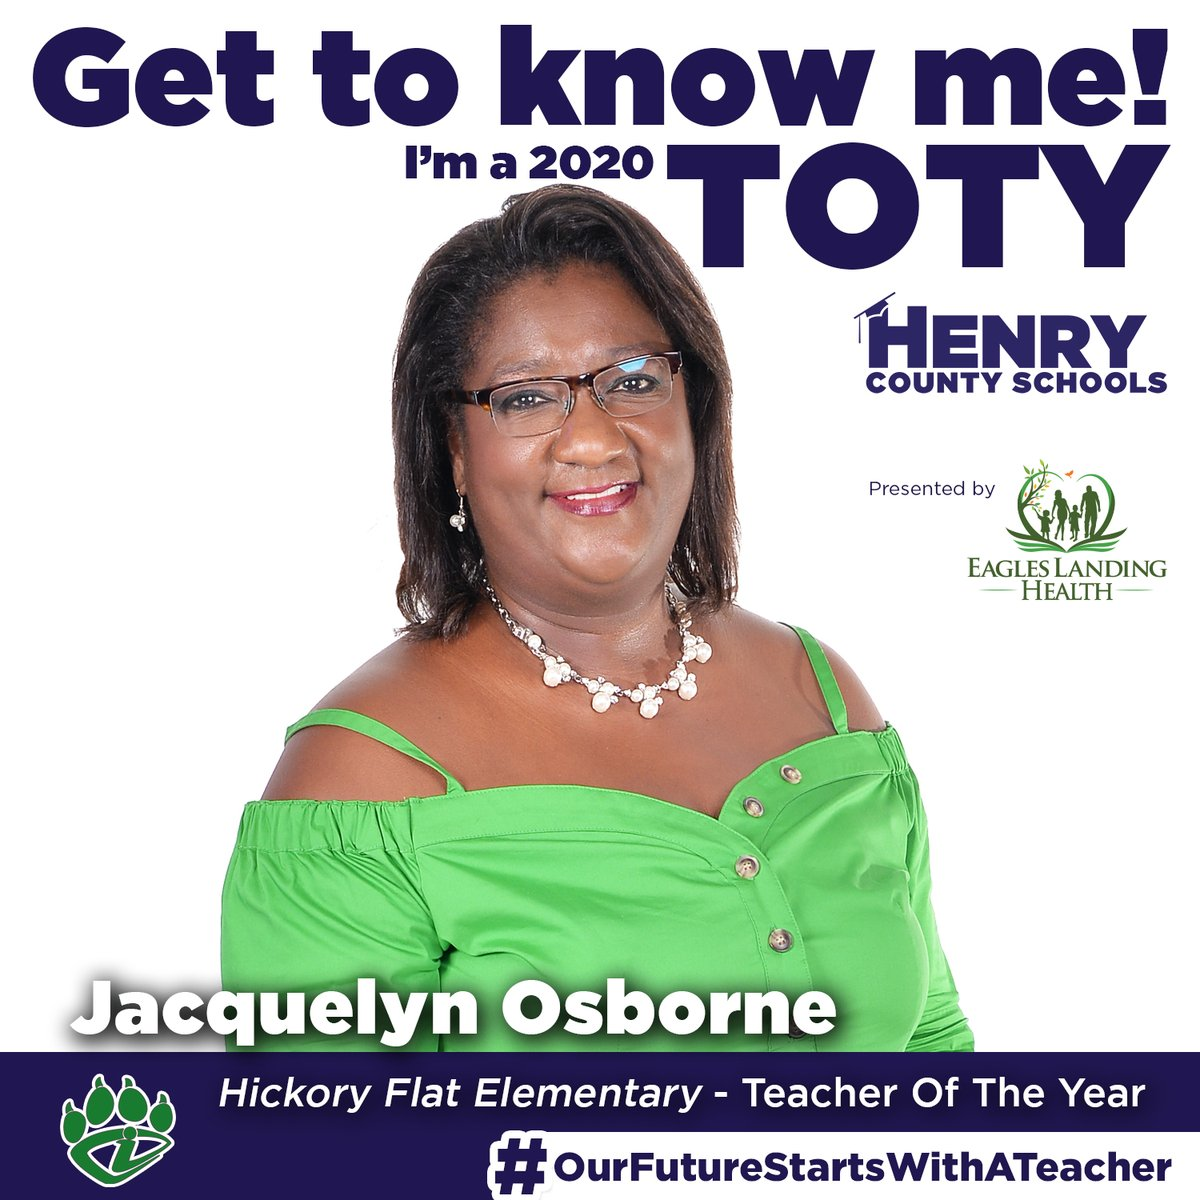 Our next Teacher of the Year, from @hfemiway, is Jacquelyn Osborne!  Congrats to Ms. Osborne! #OurFutureStartsWithATeacher  TOTY Sponsor: @ELHgeorgia